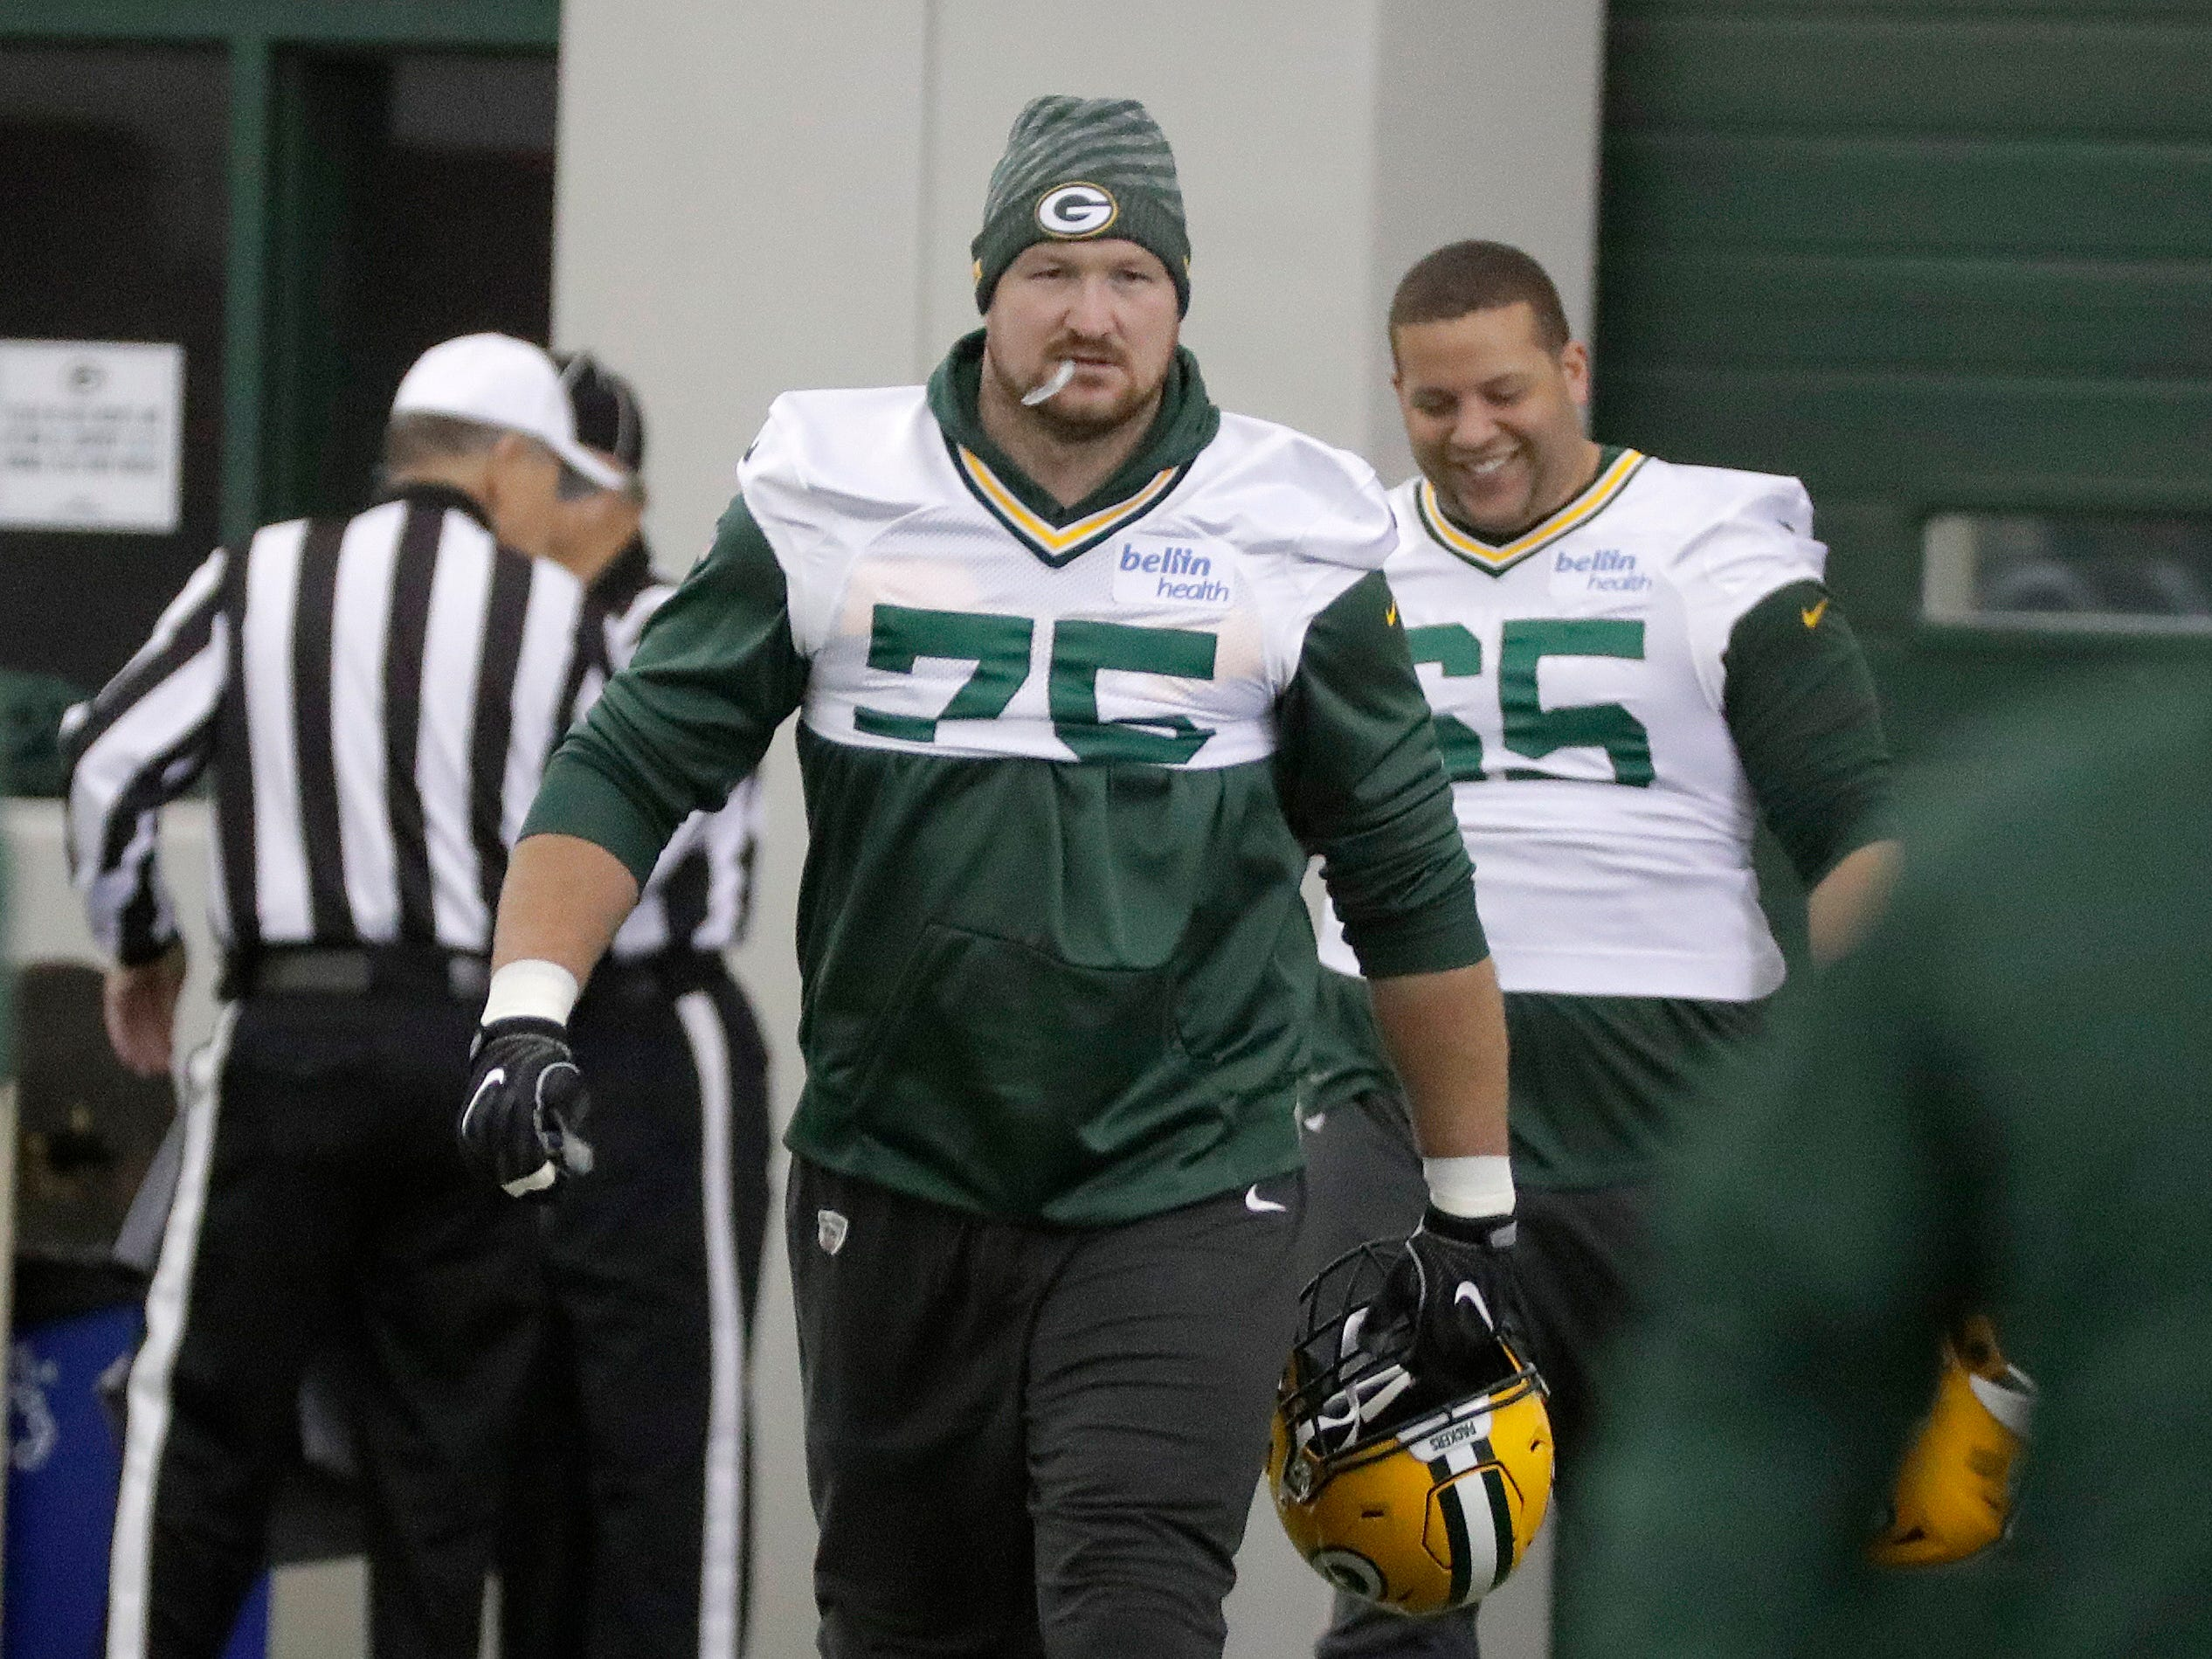 Green Bay Packers offensive tackle Bryan Bulaga (75) arrives at practice Wednesday, November 7, 2018 at the Don Hutson Center in Ashwaubenon, Wis.